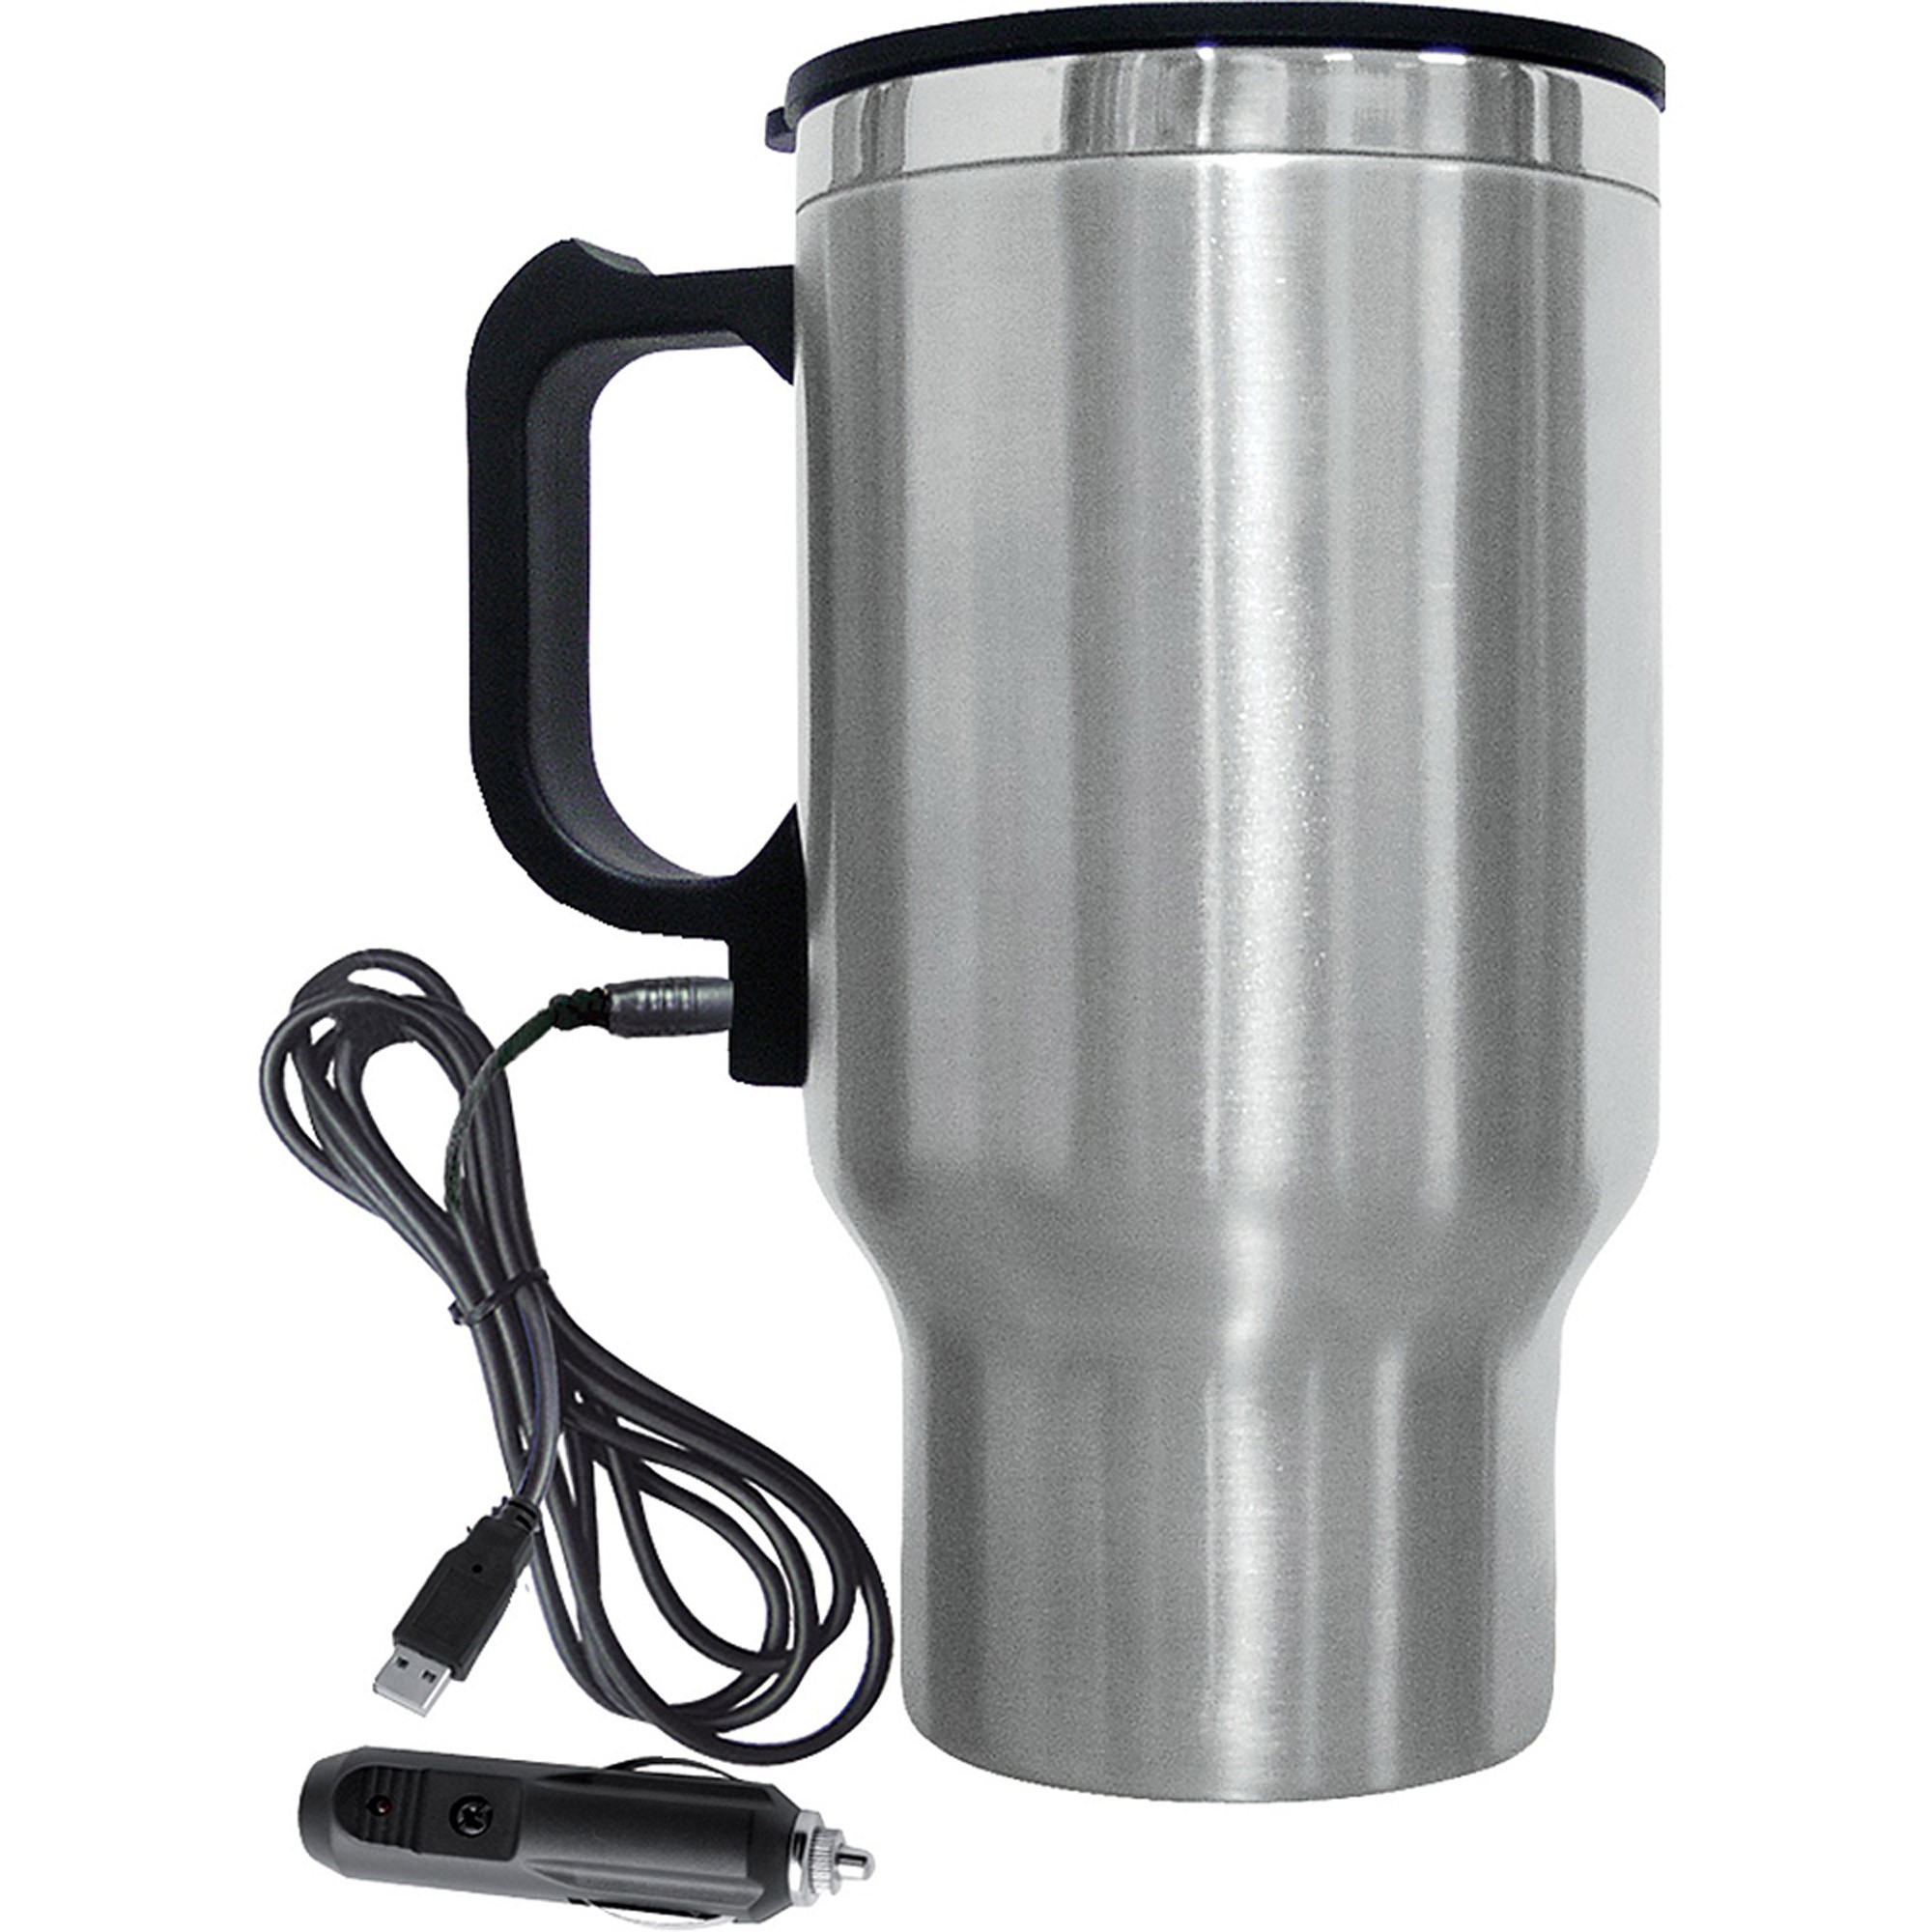 Brentwood Cmb-16c Electric Coffee Mug With Wire Car Plug